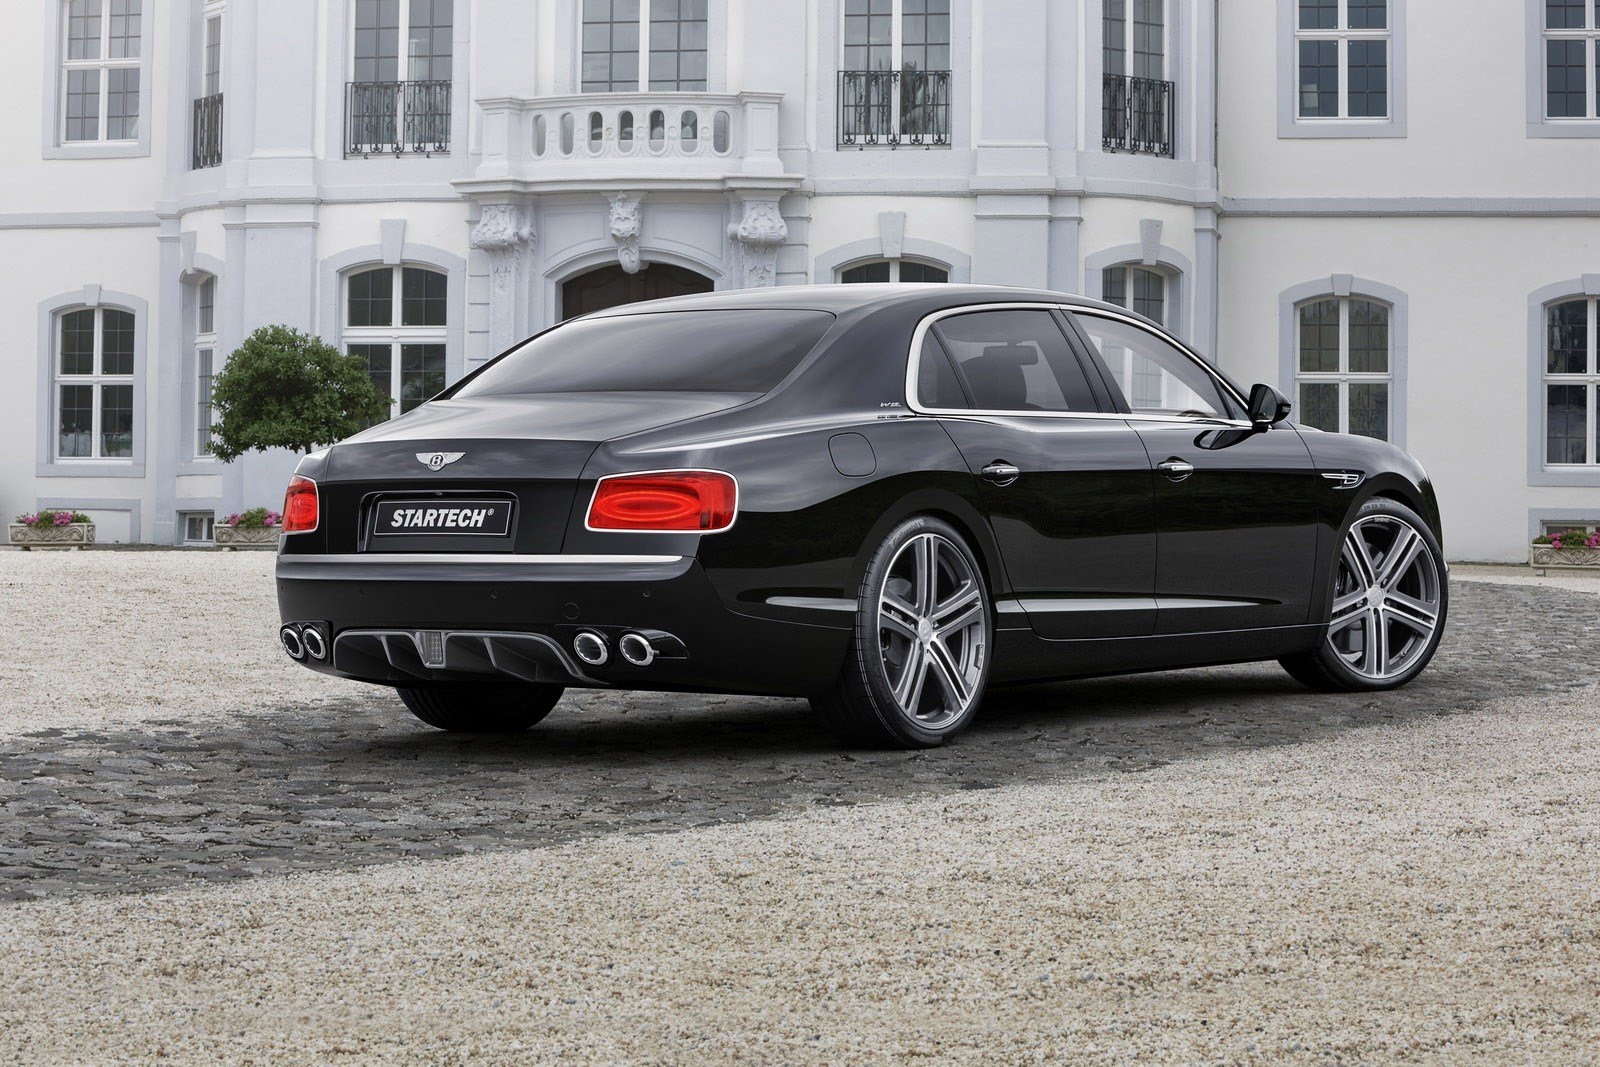 New Startech Debuts Two Bentley Projects In Frankfurt Starting On This Month